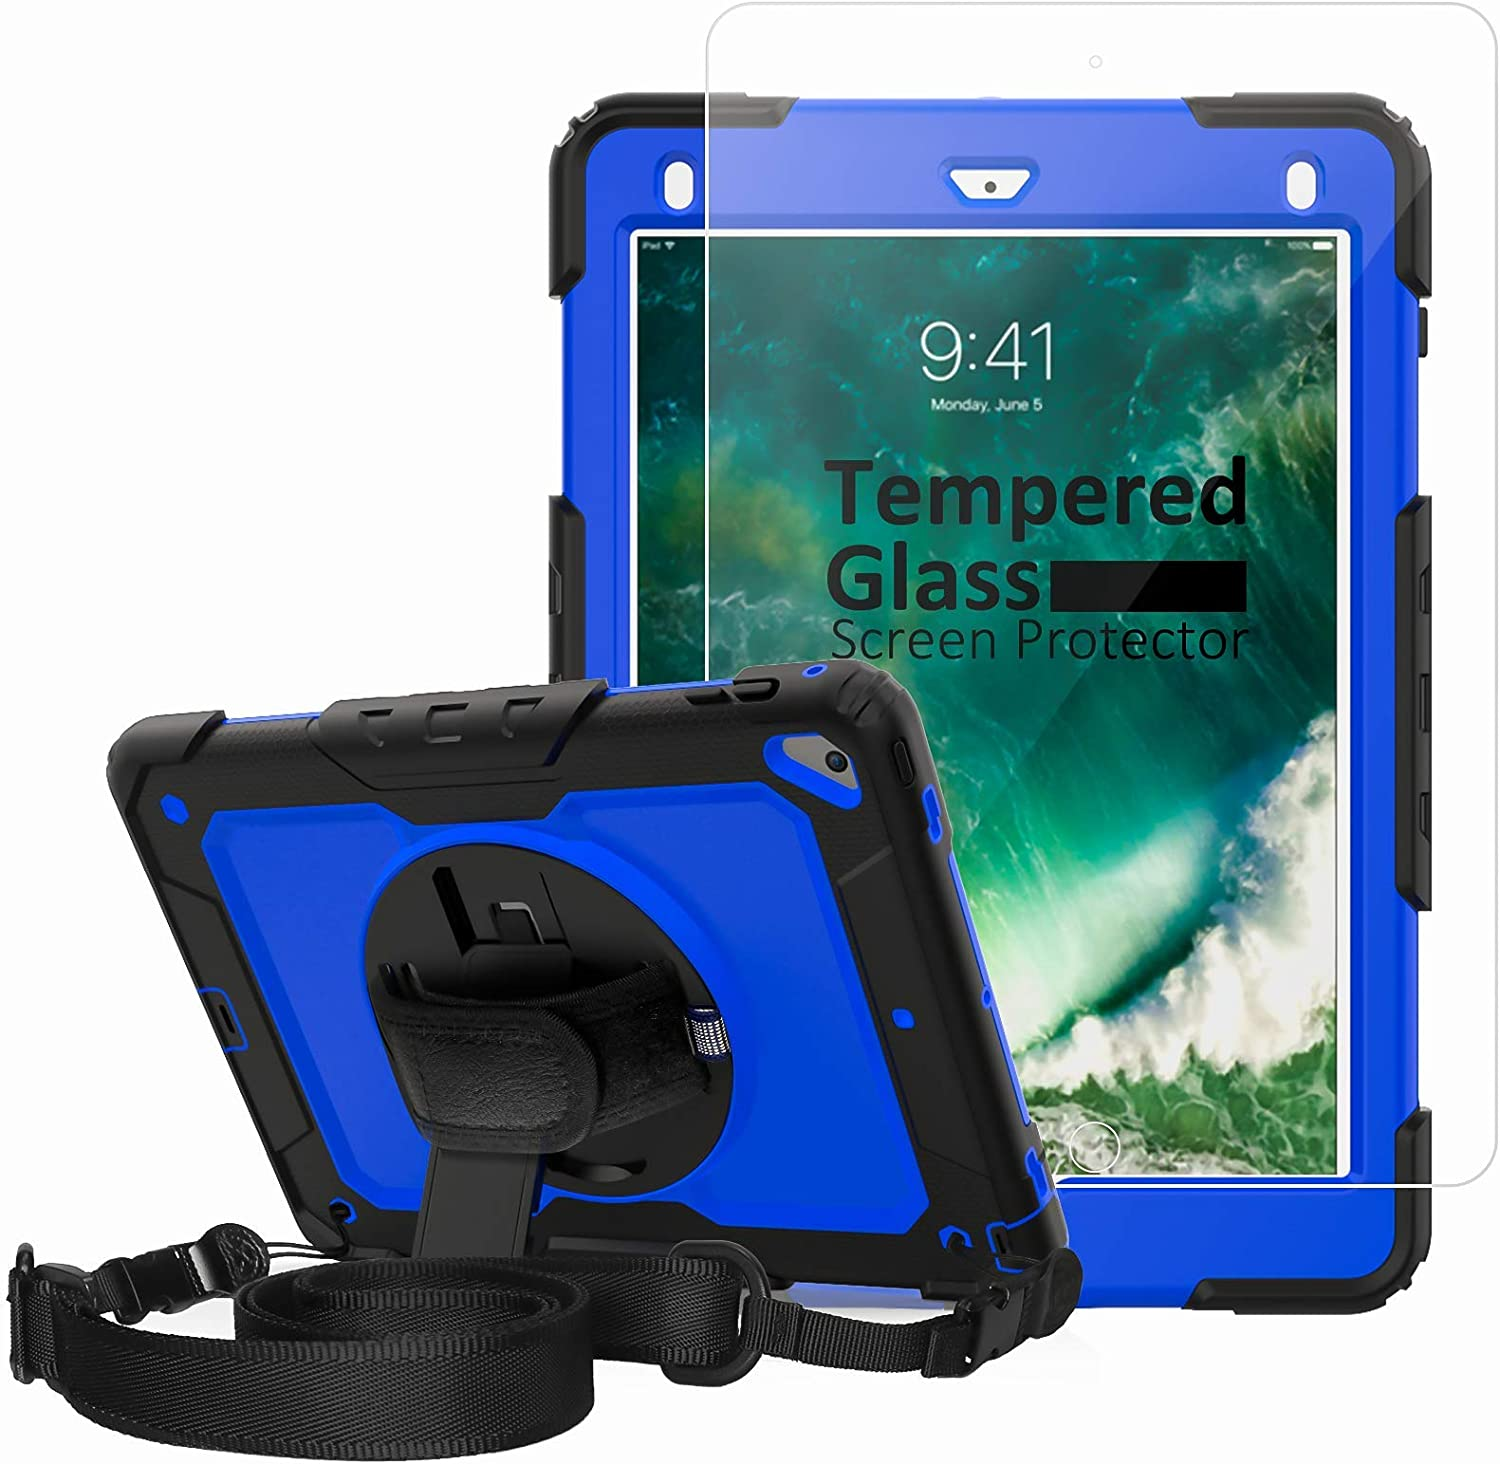 iPad 6th Generation Case with Tempered Glass Screen Protector, New iPad 9.7 Case 2017, [360° Rotatable Hand Strap & Kickstand] Ambison Full Body Protective Case with Pencil Holder (Blue & Black)